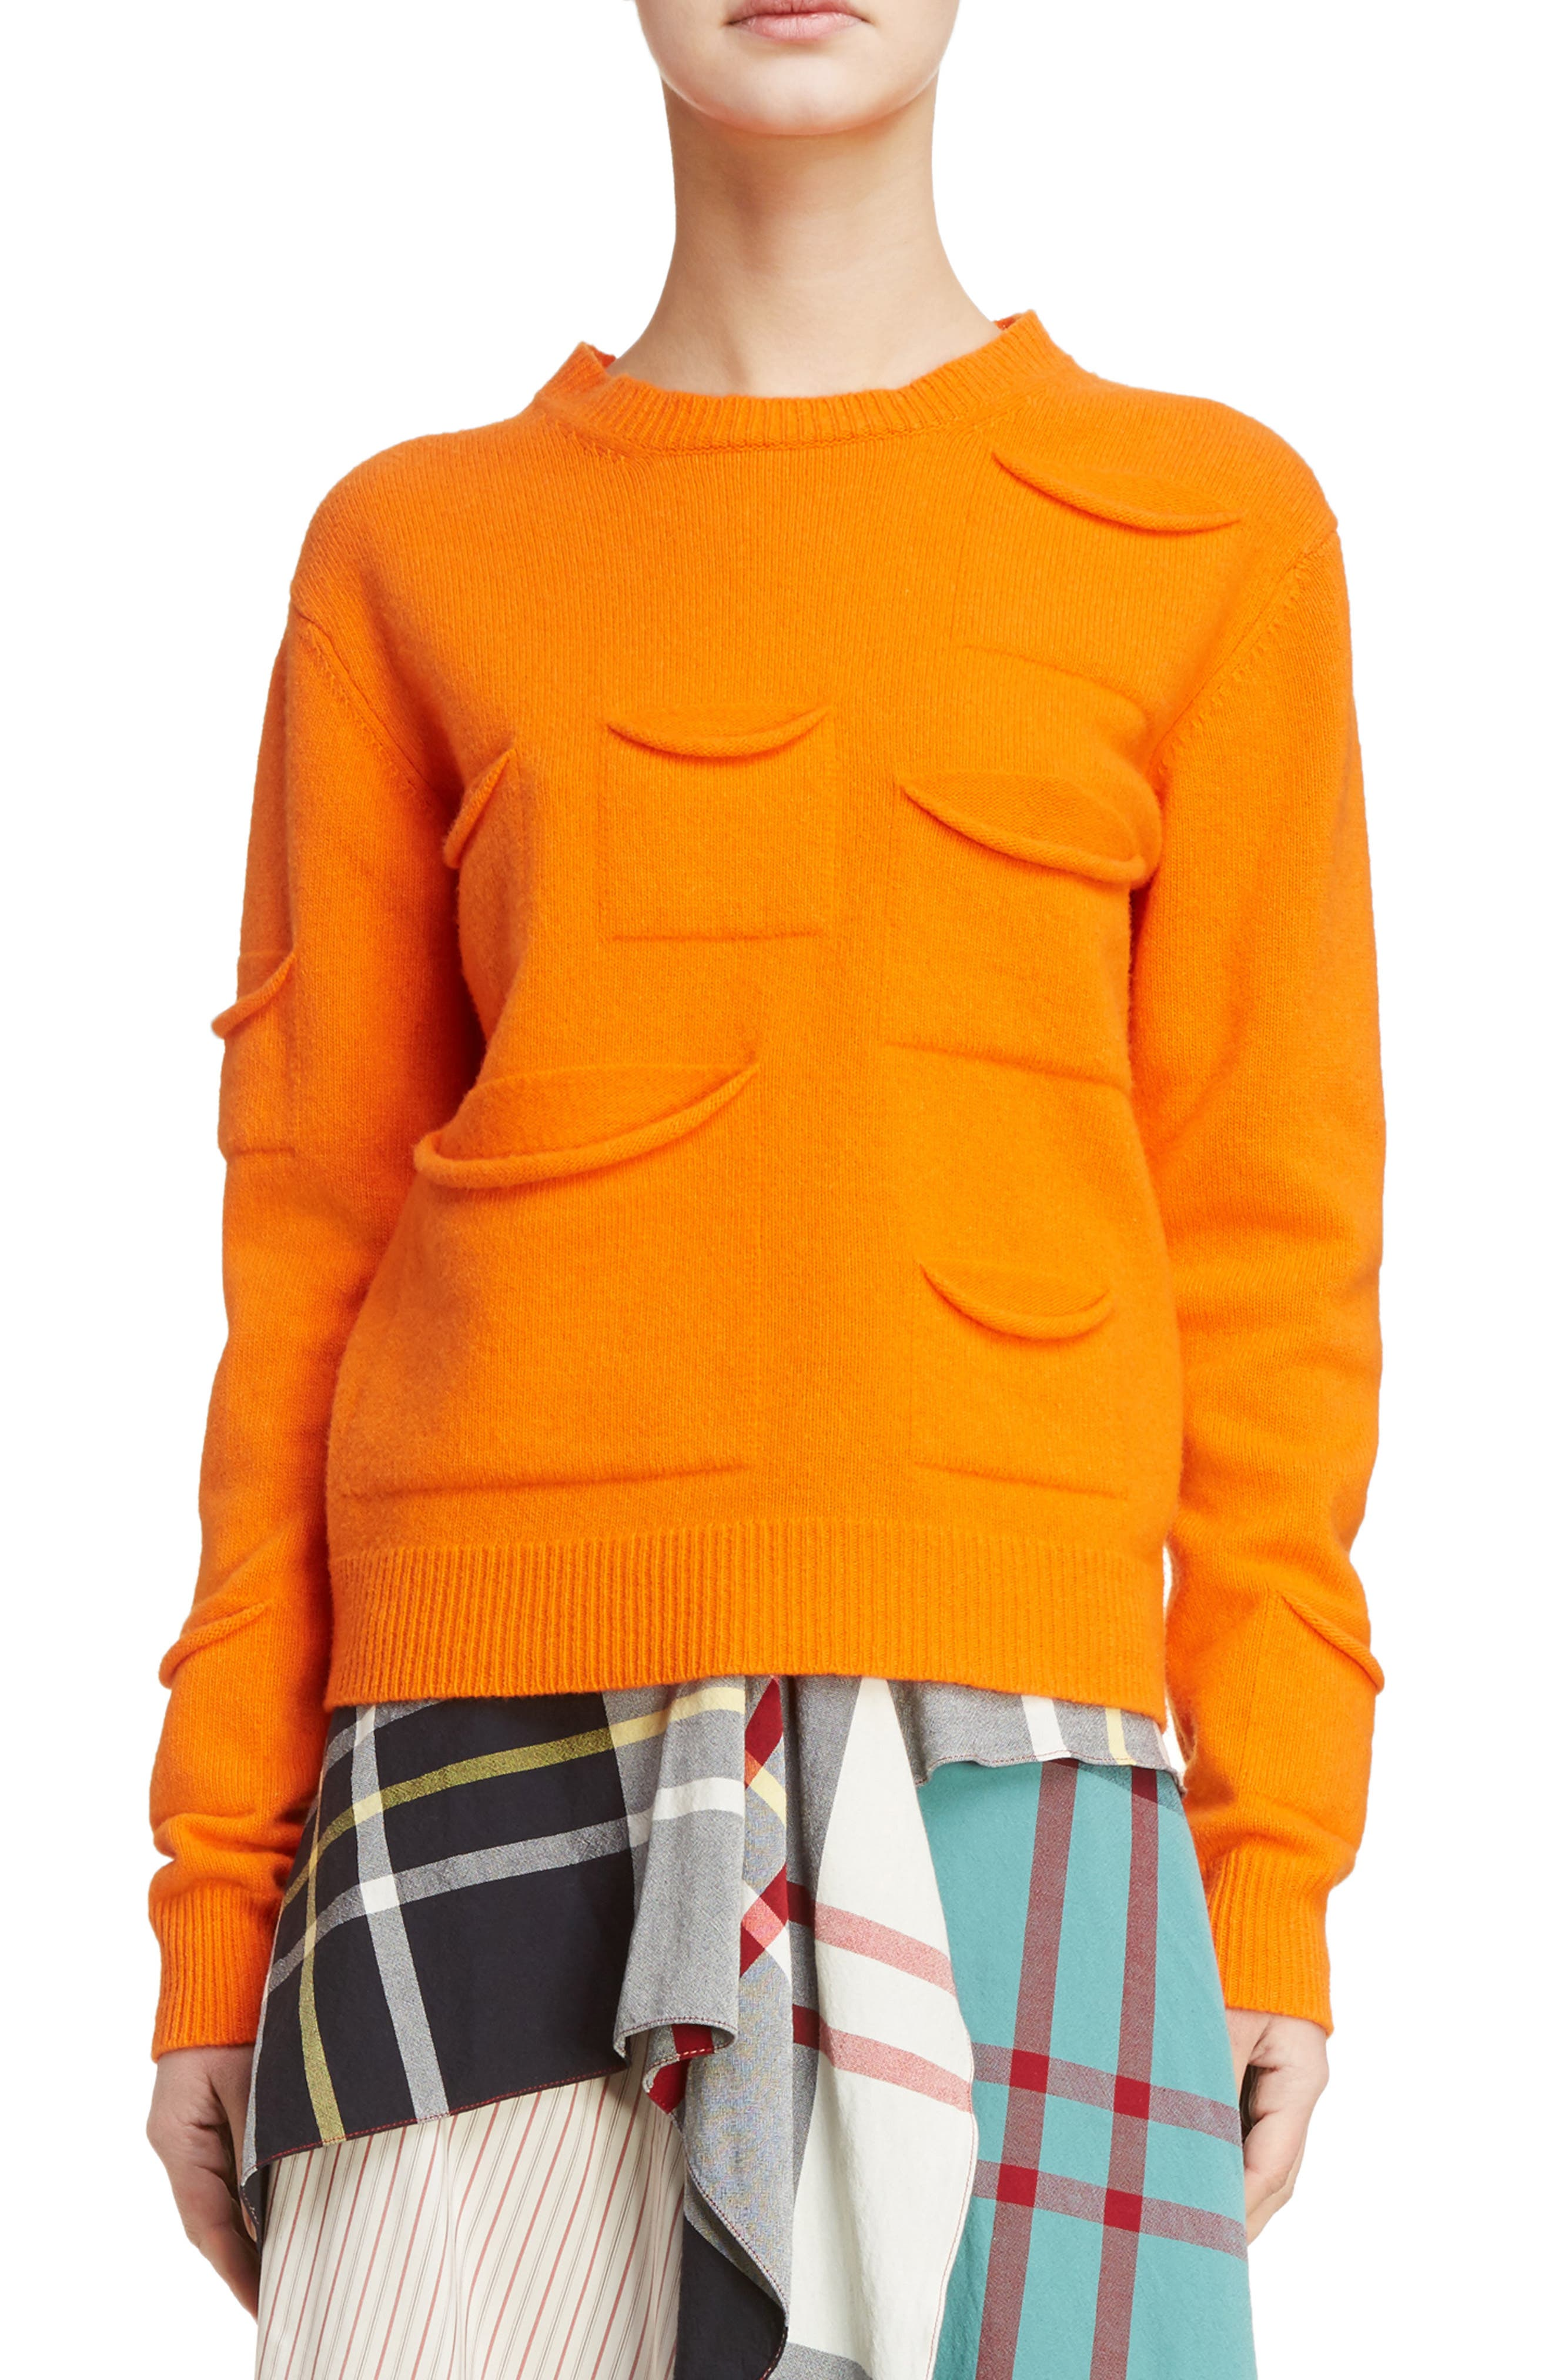 J.W.ANDERSON Multi Pocket Crewneck Sweater,                             Main thumbnail 1, color,                             800